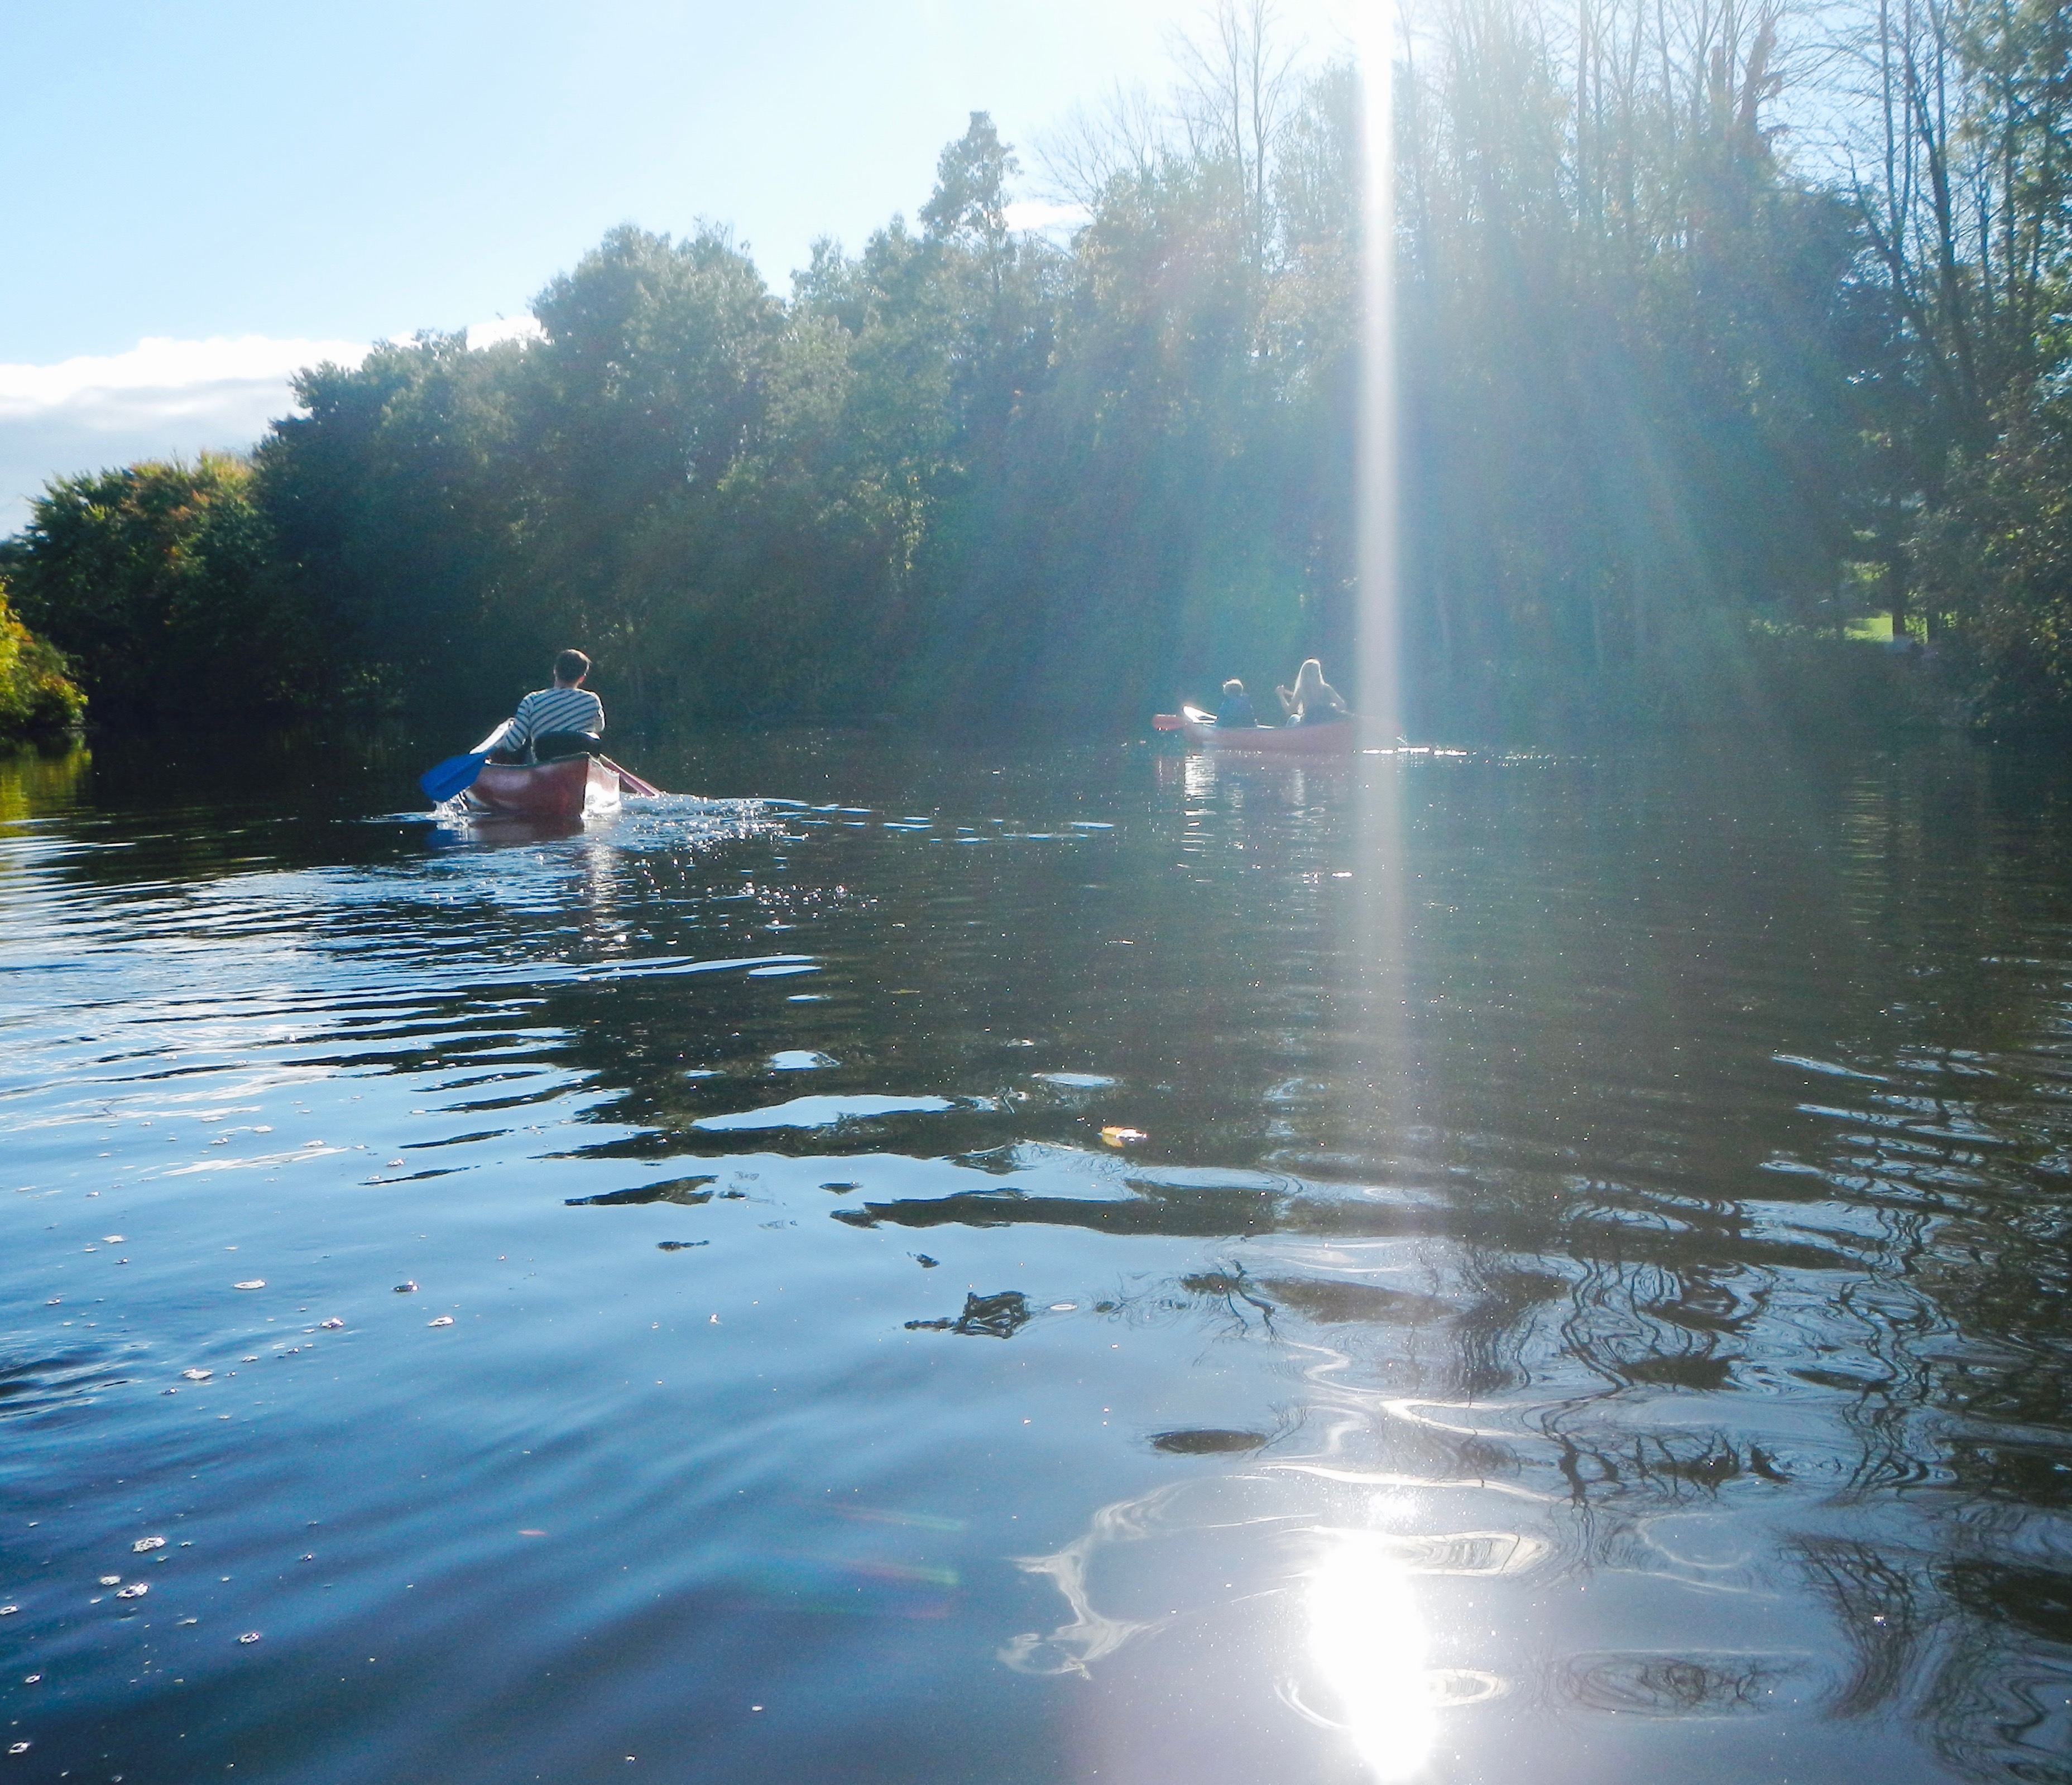 sunshine-streaming-down-on-canoeists-on-rogue-river